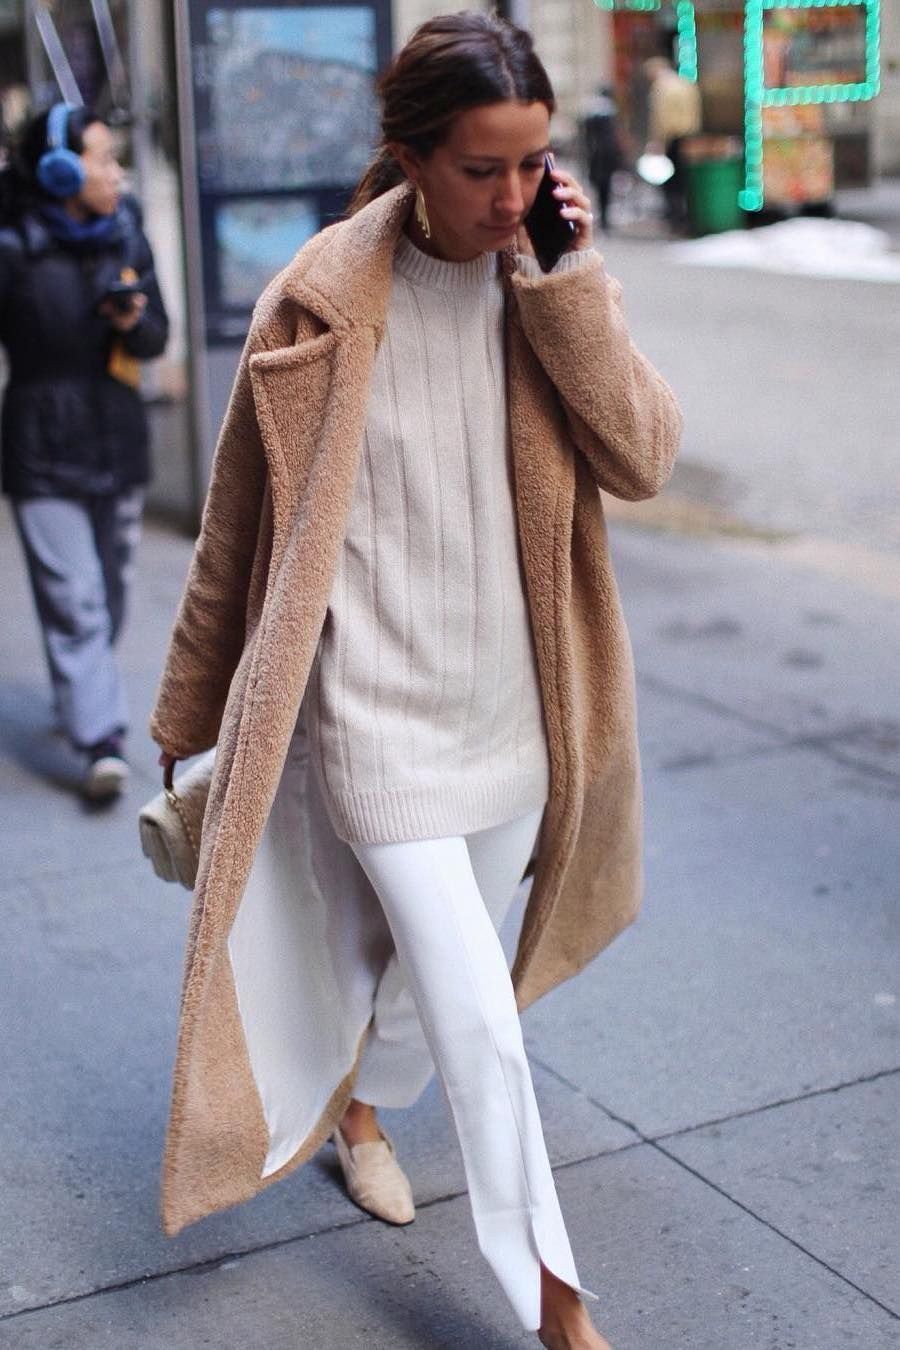 Colour outfit ideas 2020 beige sweater look, minimalist fashion, sweater   beige, street fashion ...